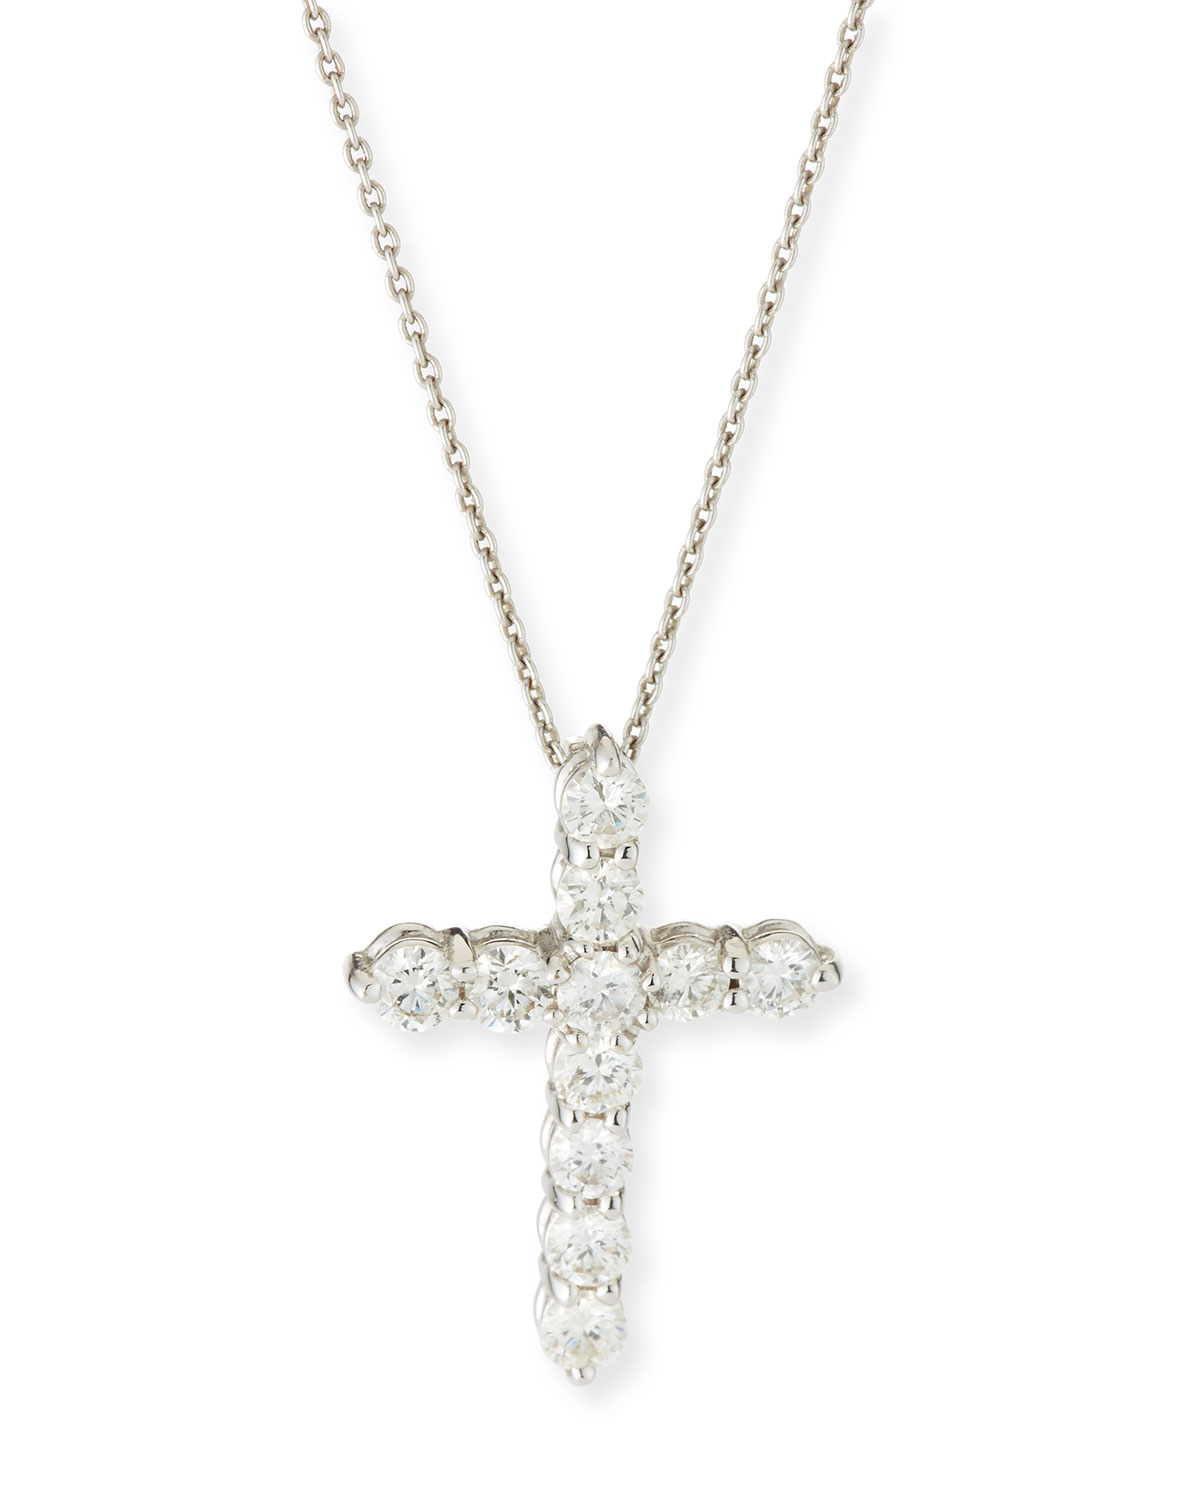 Roberto Coin 18K White Gold 1.77cts  Diamond Gold Necklace with Stones 001144AWCHX0